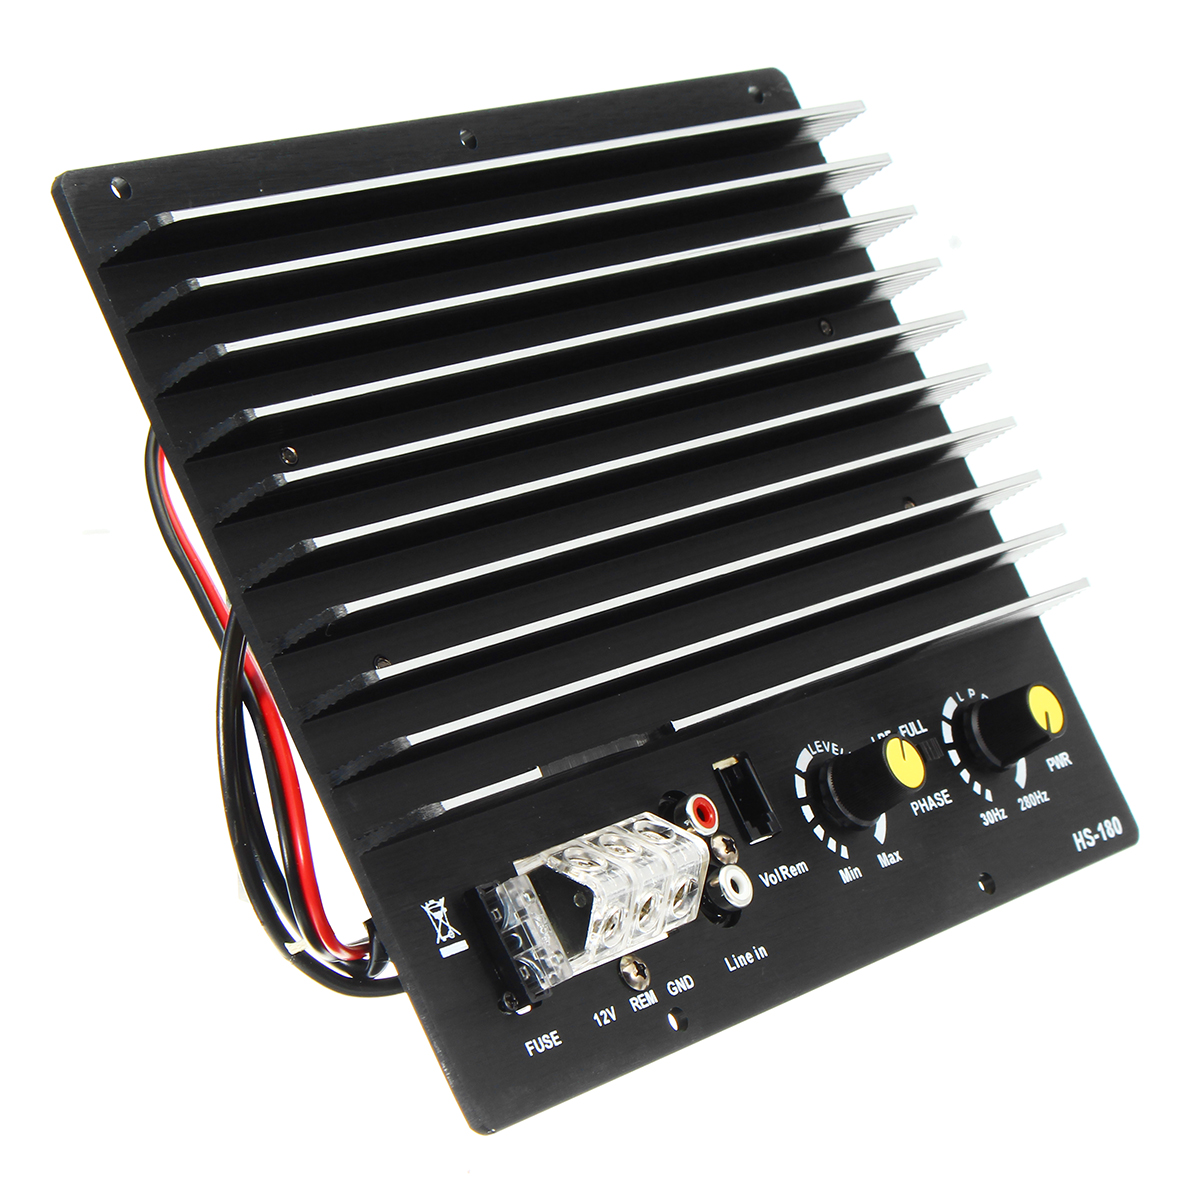 12v 1200w car speakers subwoofer high power car amplifier ...